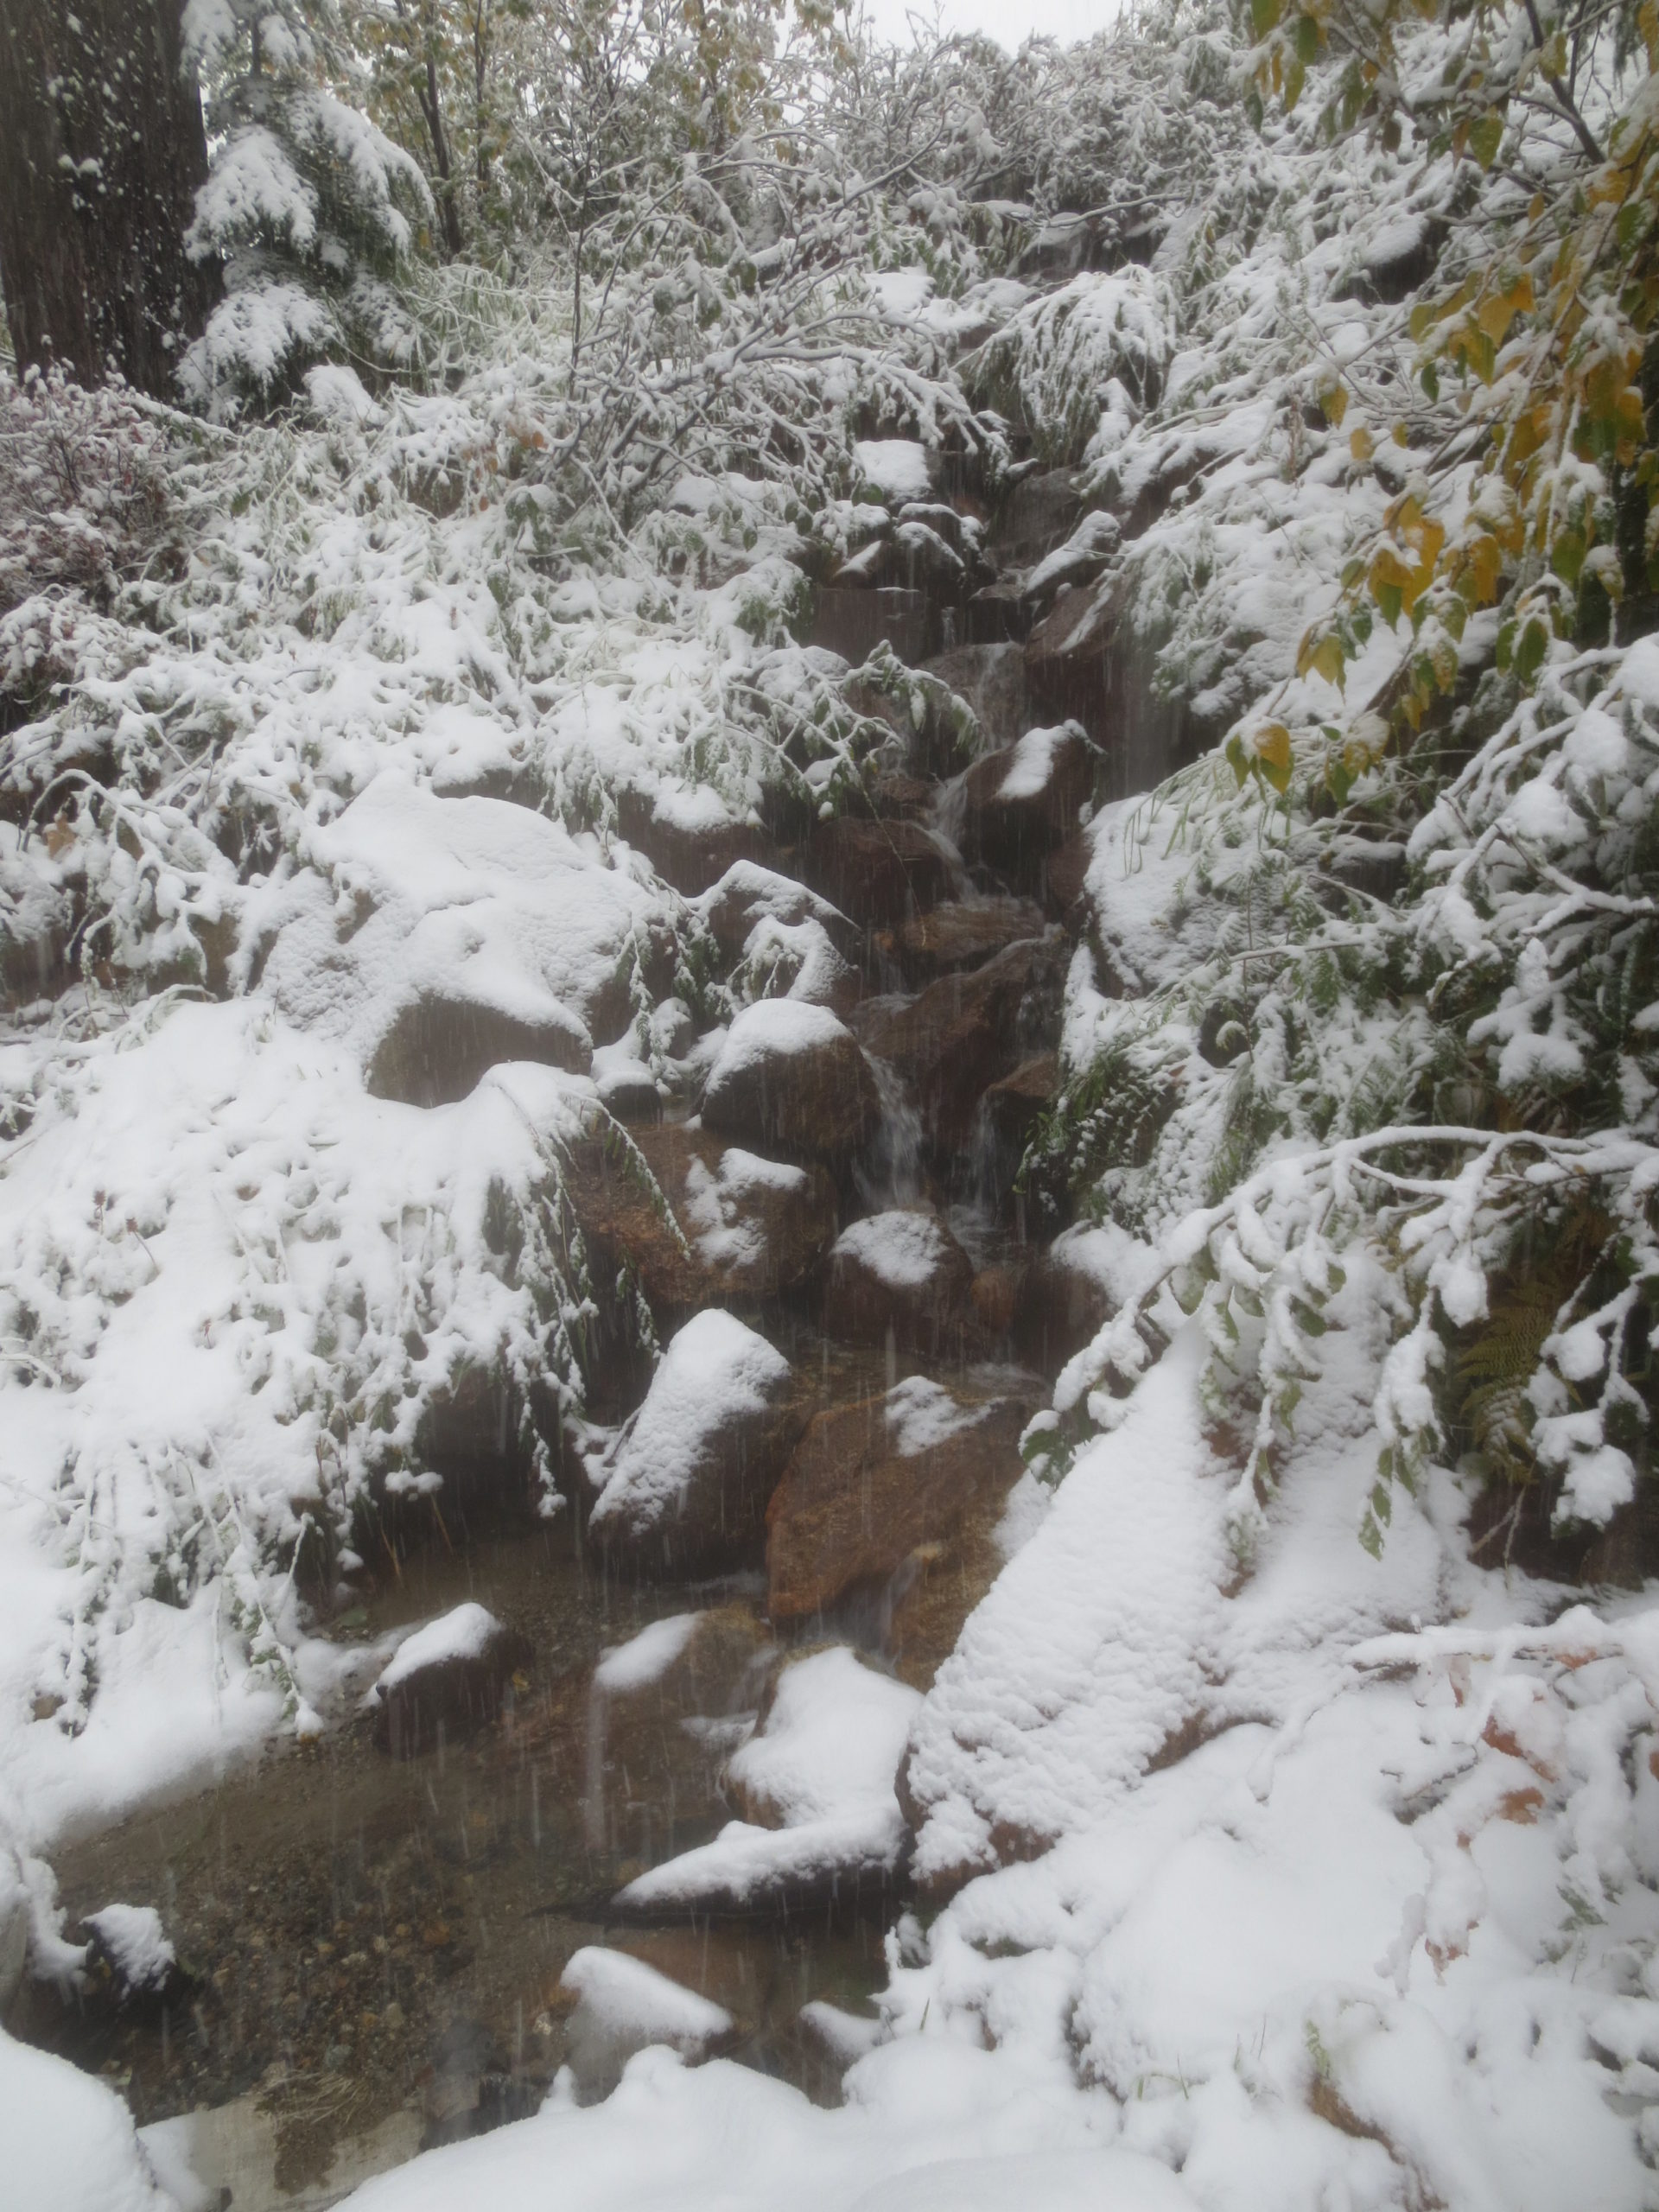 creek running down the side of a hill with snow on the banks